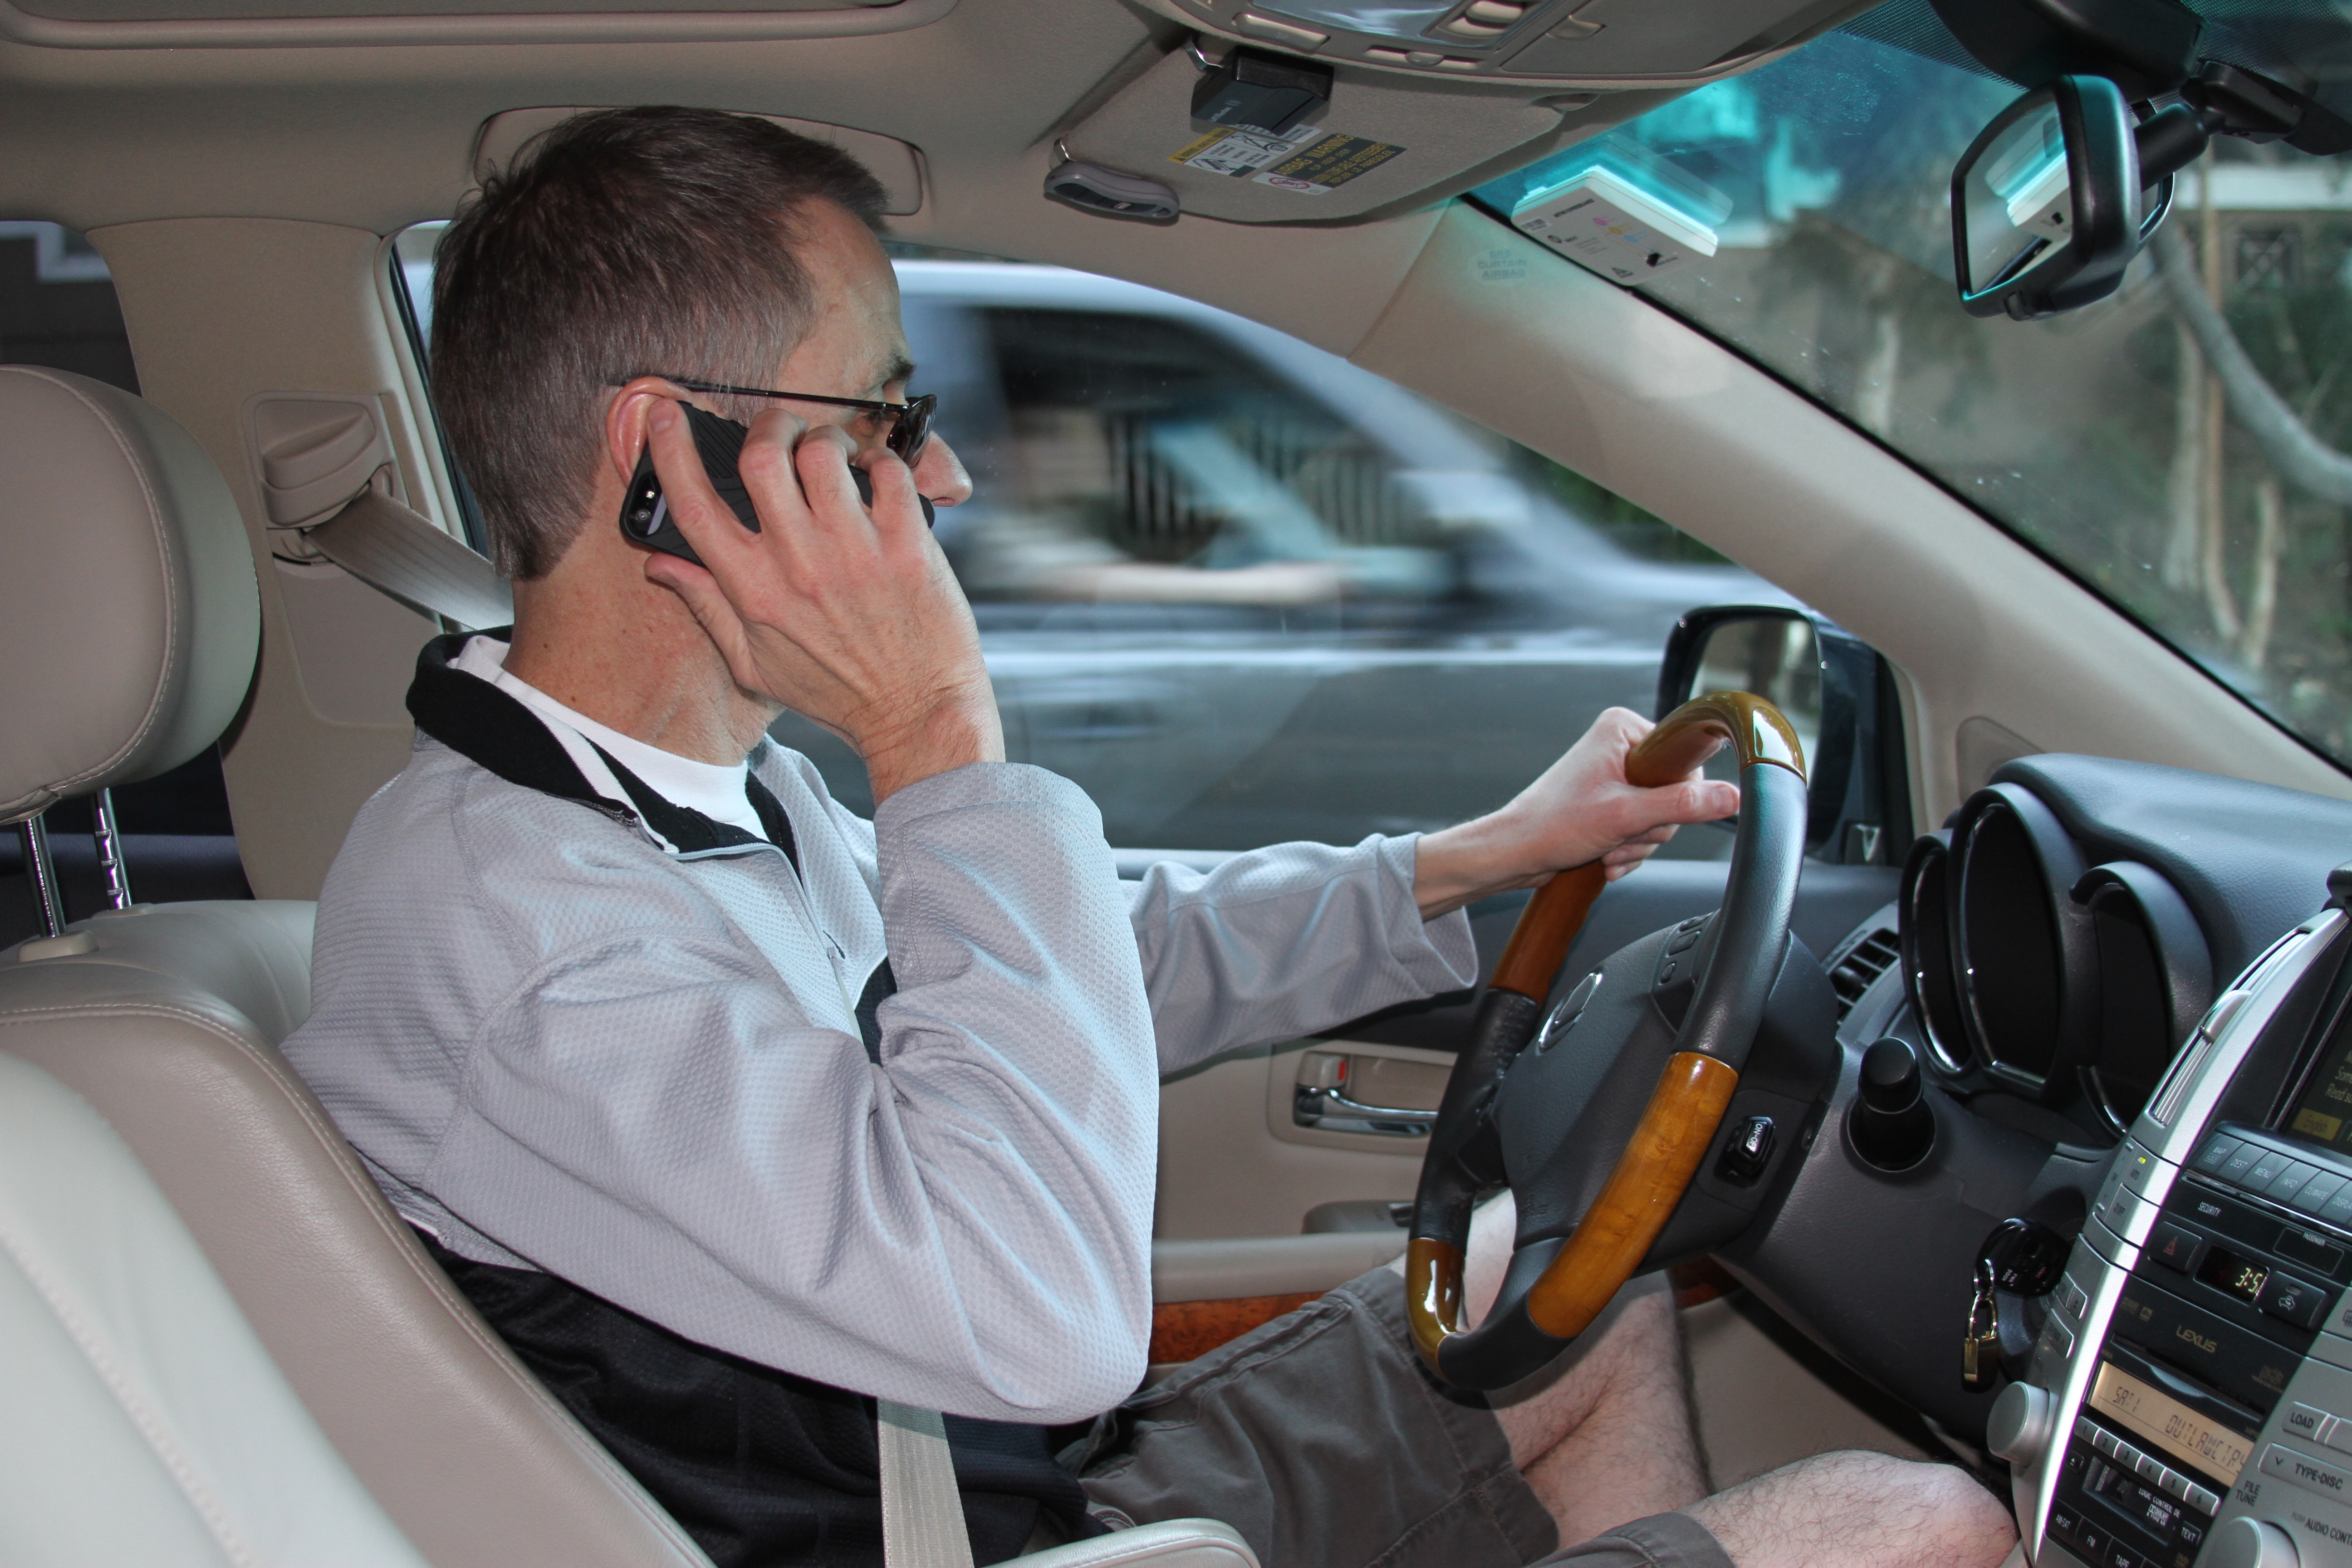 Cell Phones Linked to27 Percent of Crashes